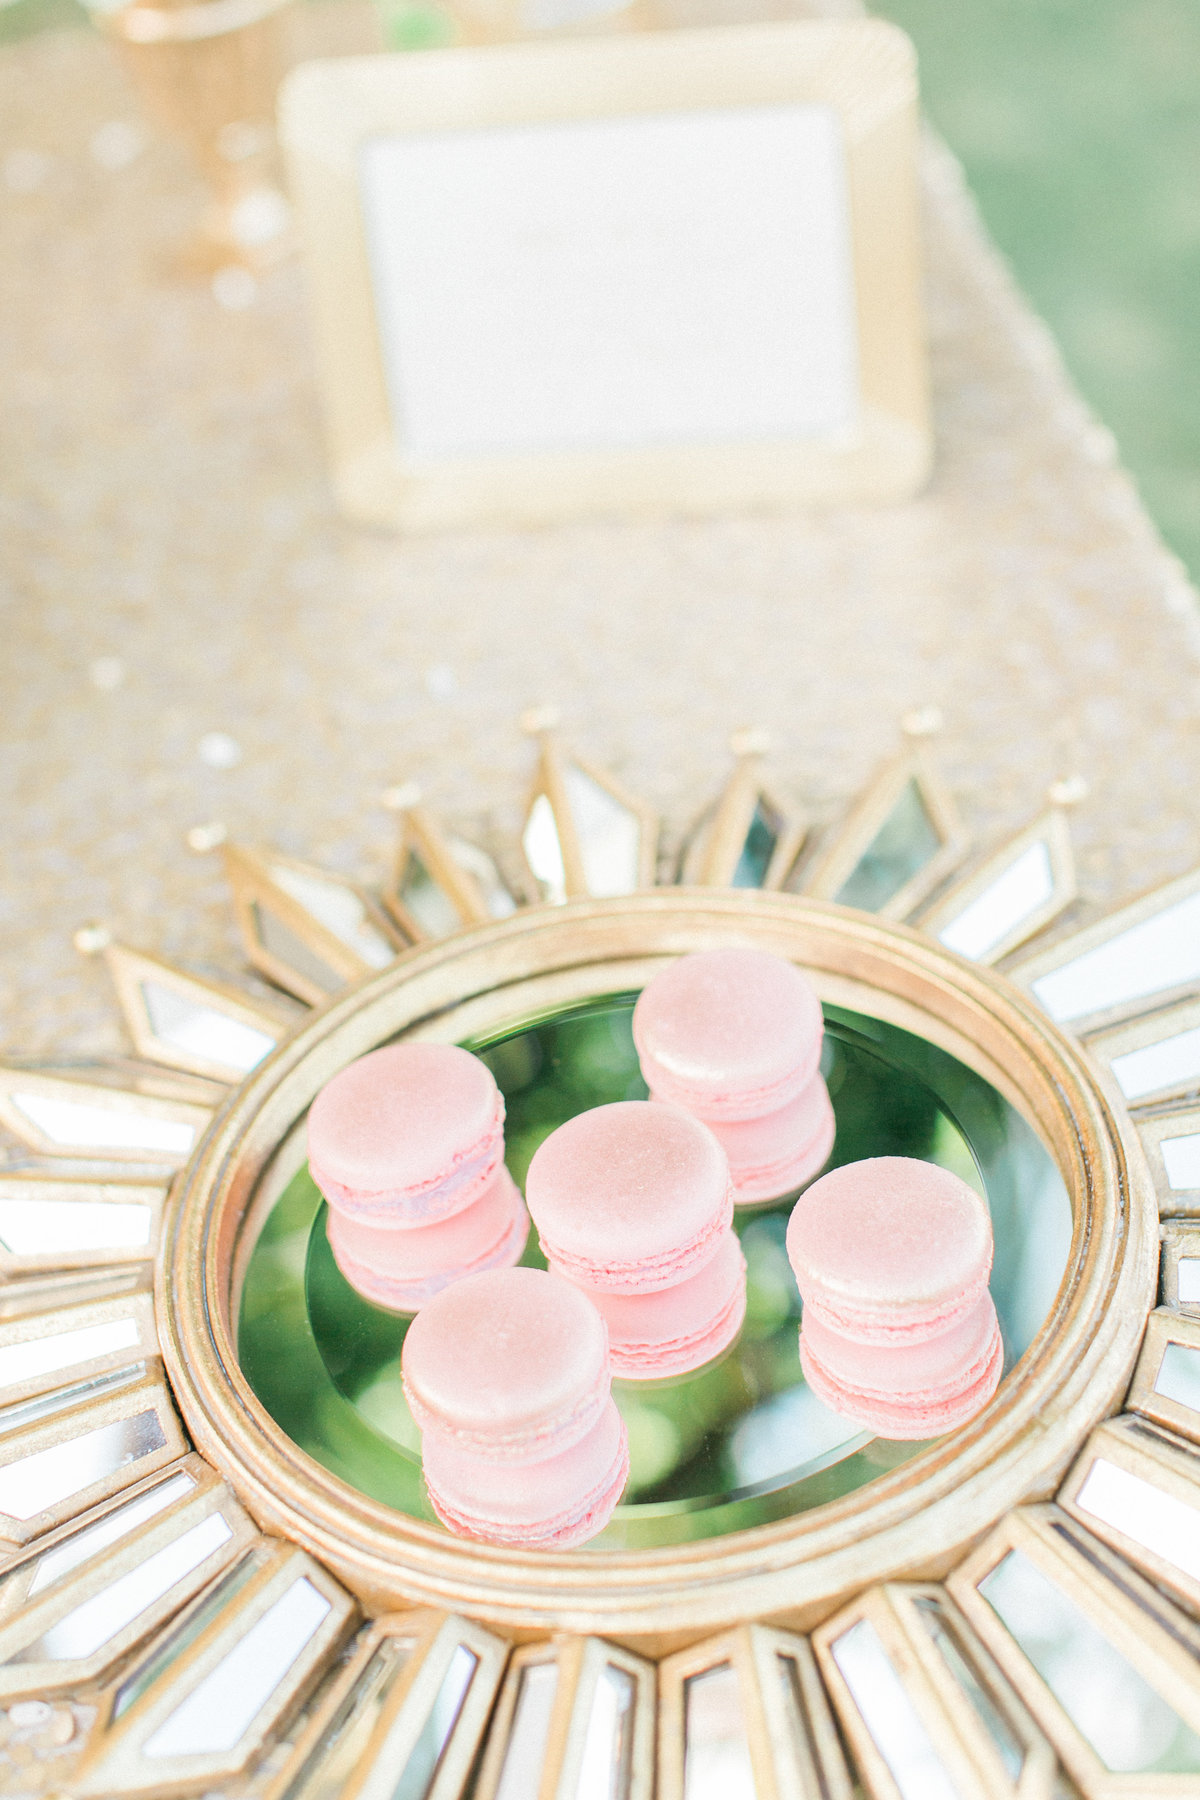 Blush Macarons on Gold Mirror